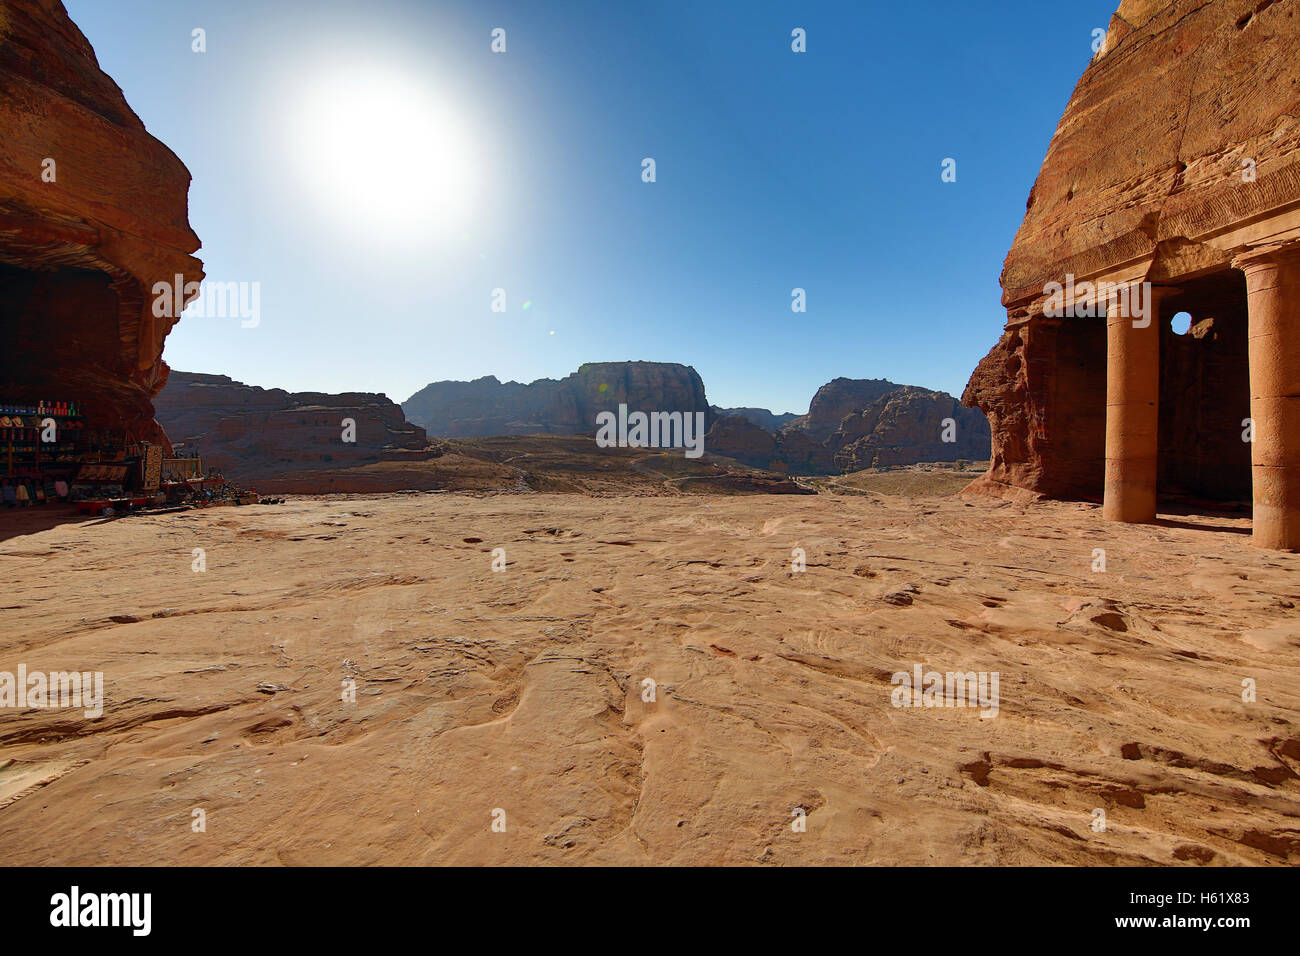 View from the Urn Tomb of the Royal Tombs in the rock city of Petra, Jordan - Stock Image